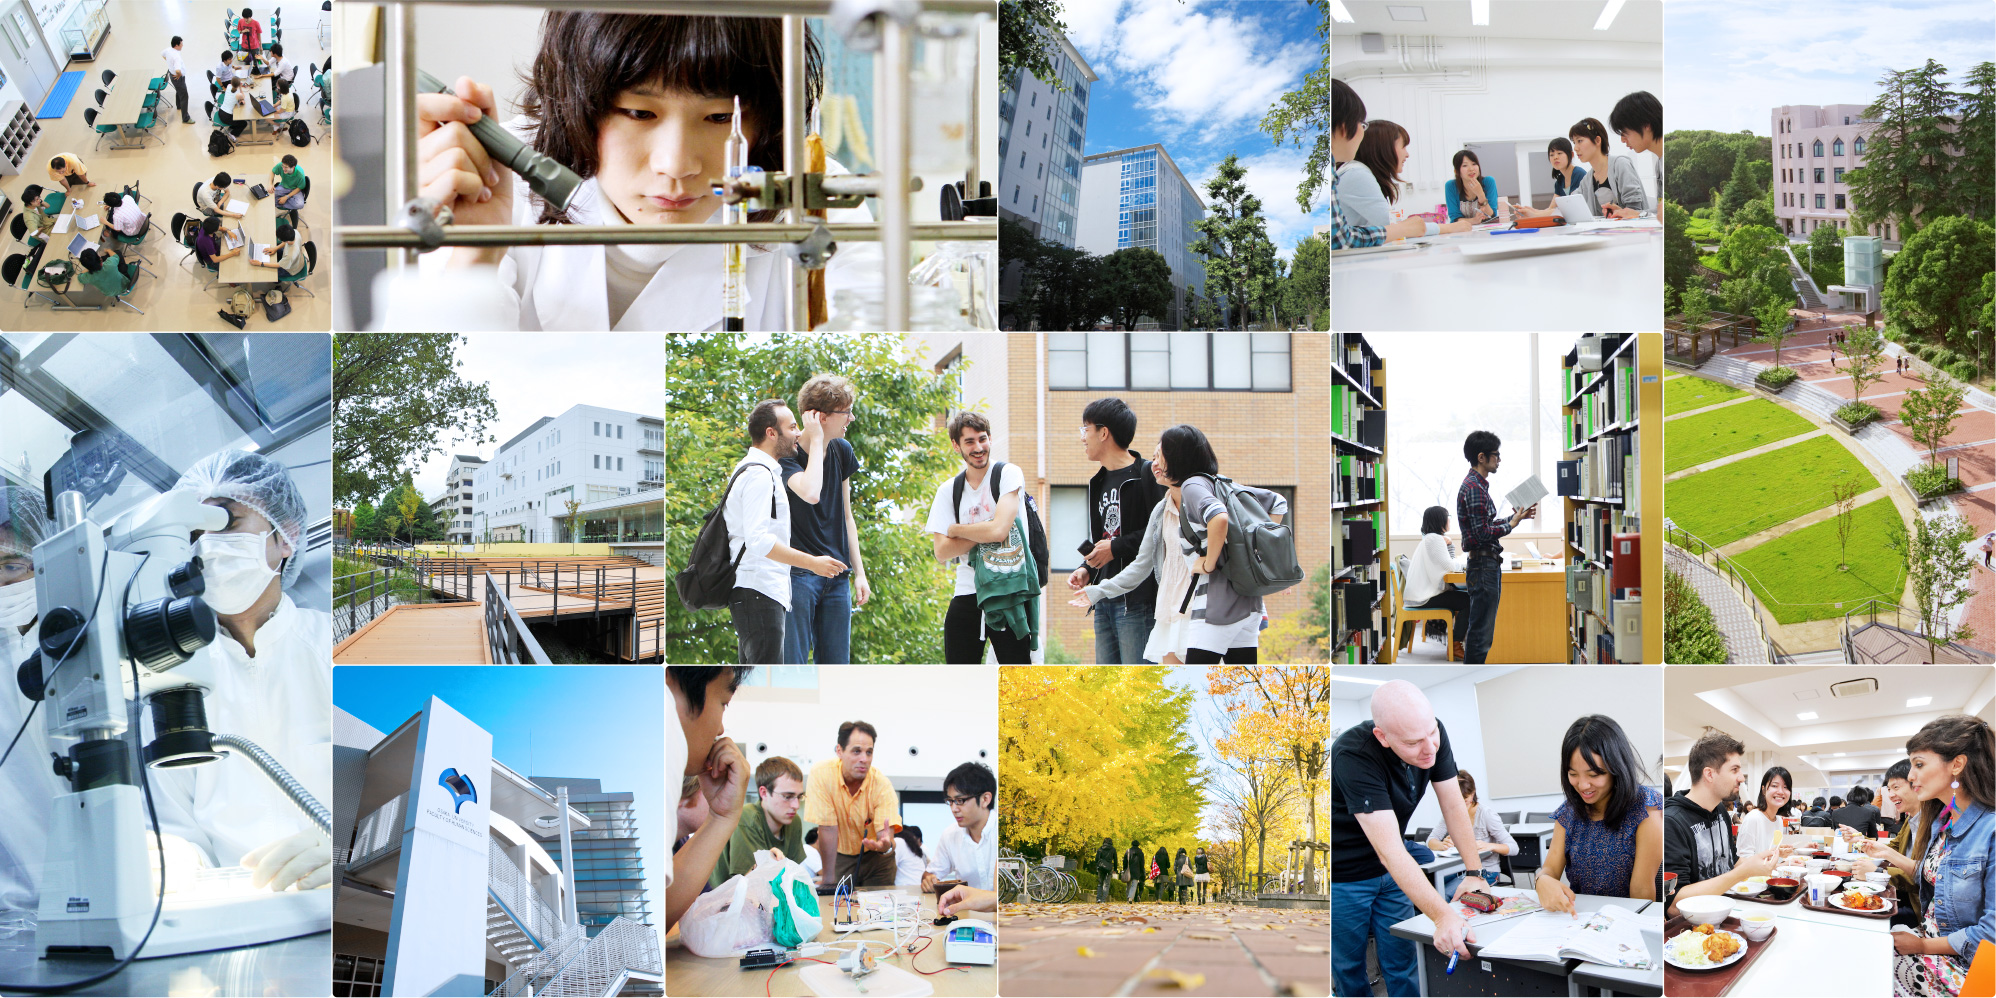 Osaka University, students working in lab and on campus